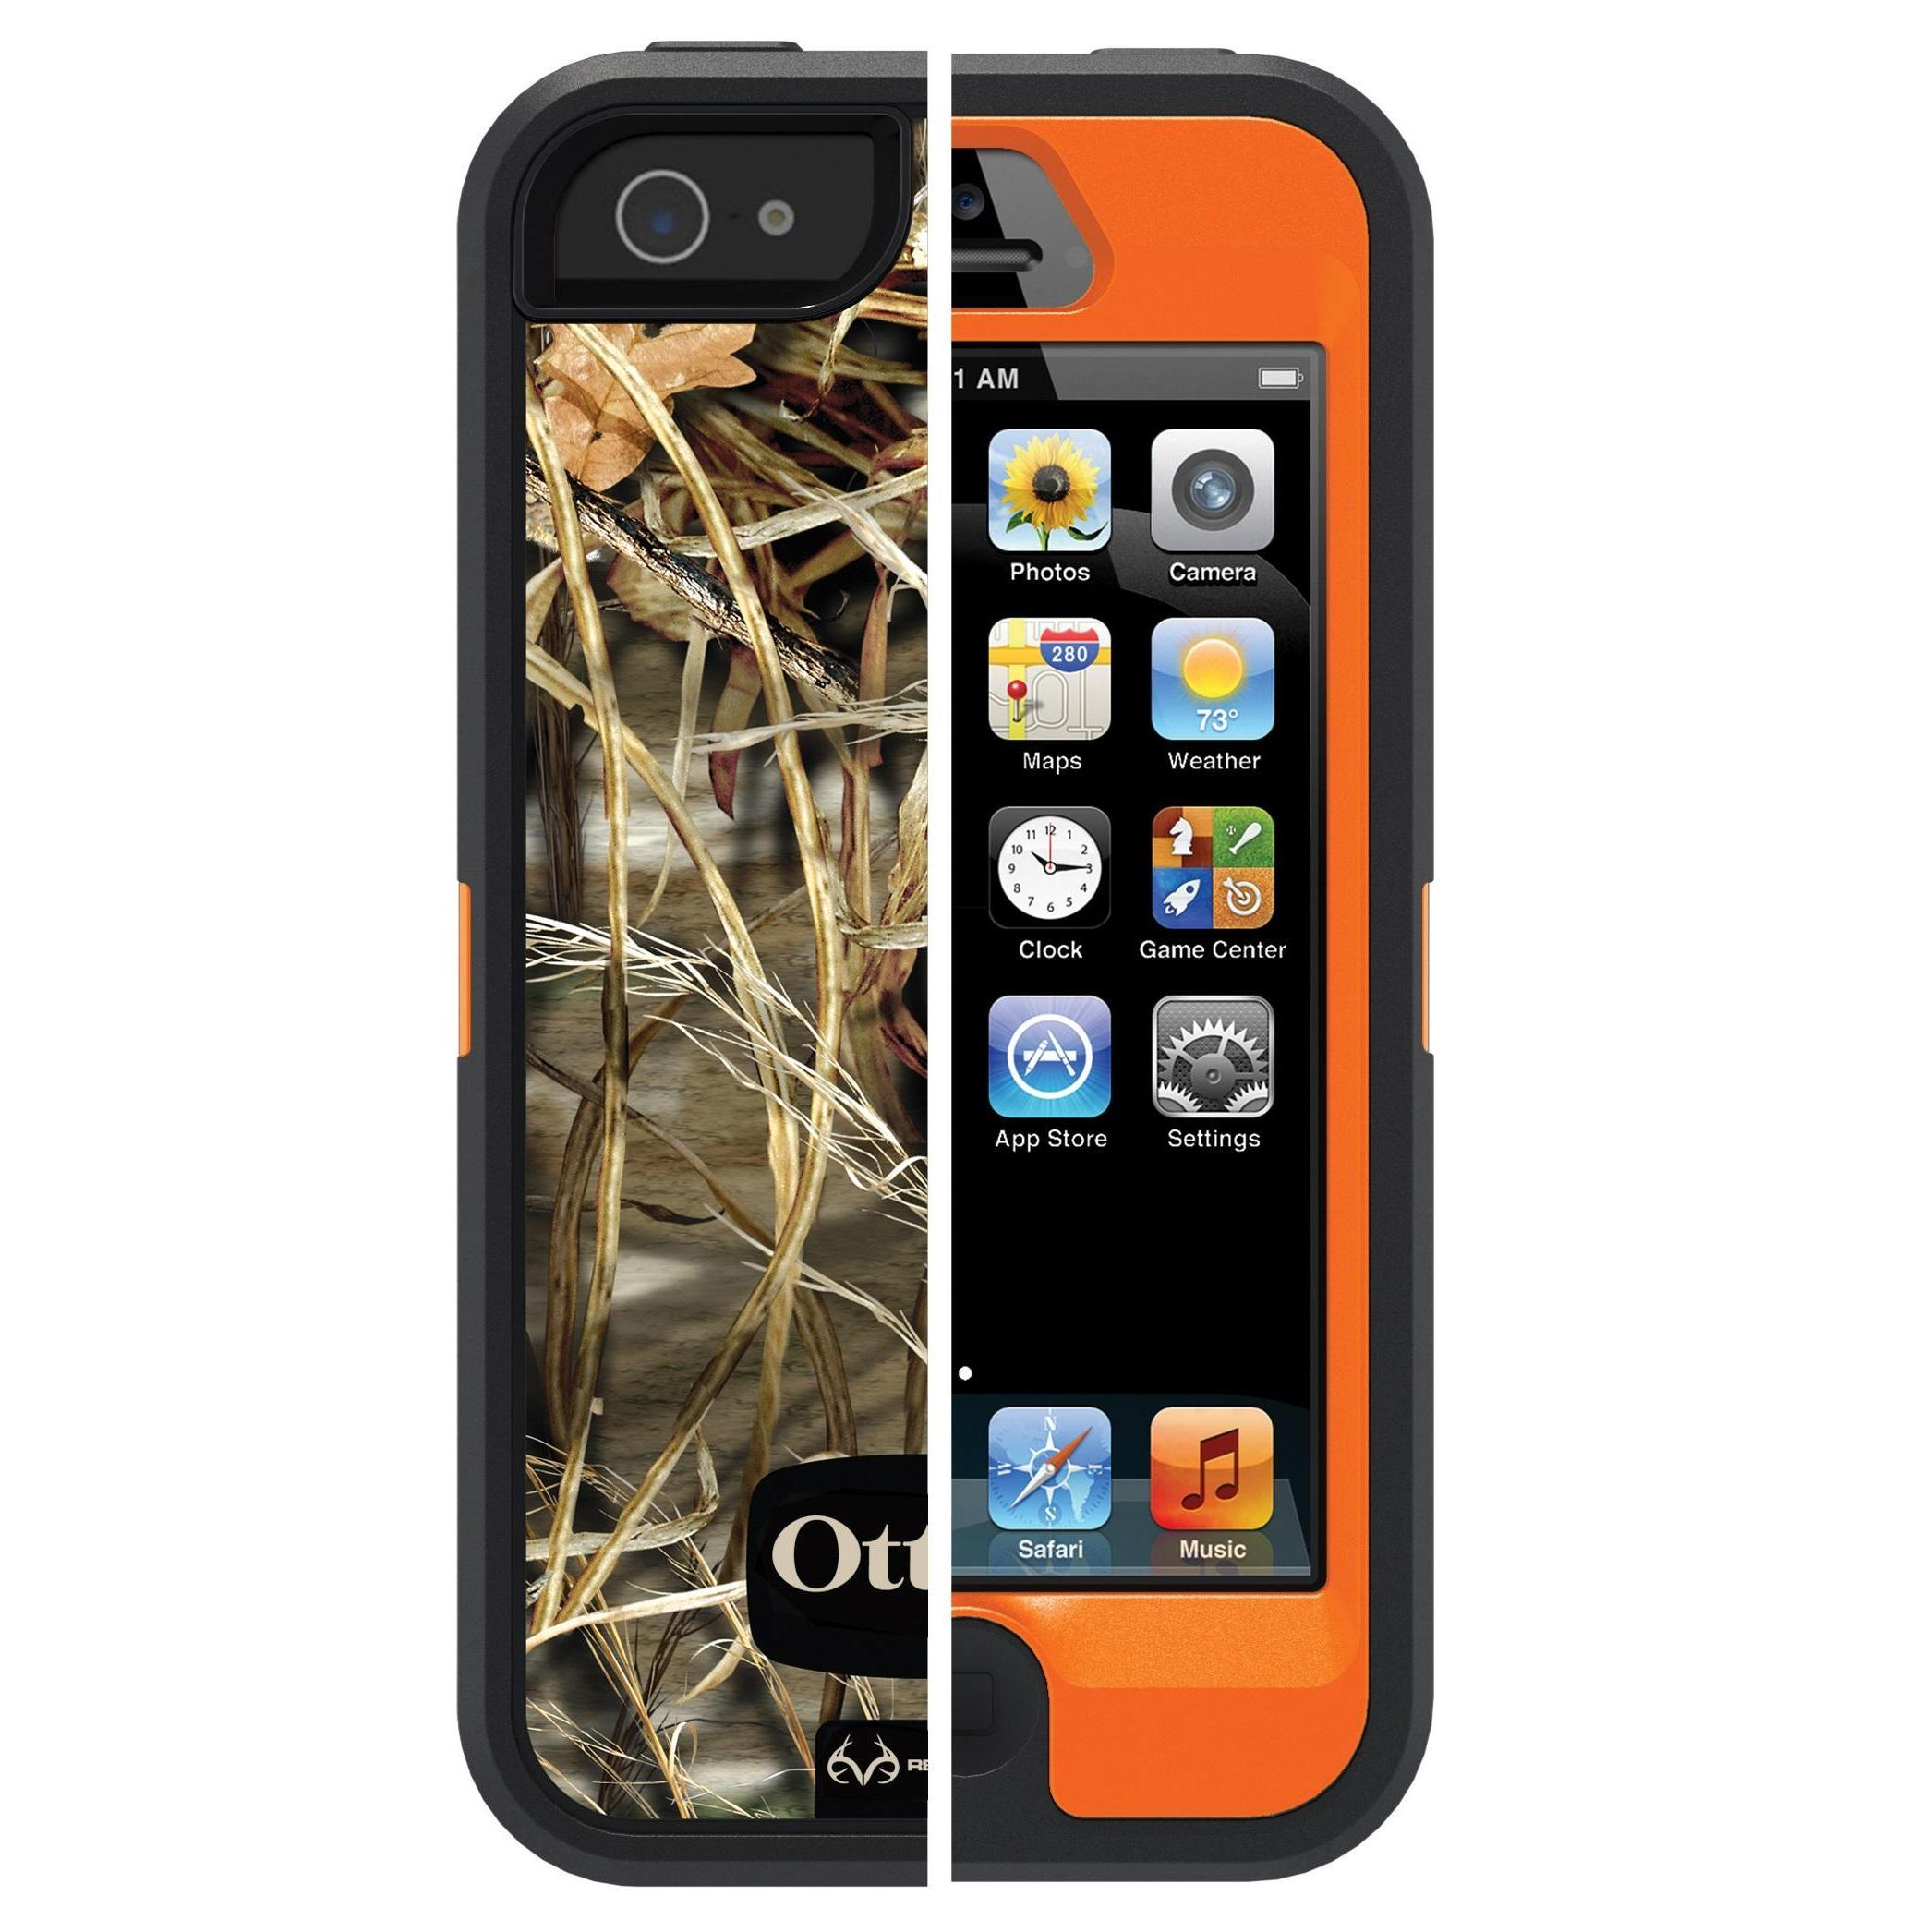 Otterbox Case For Le Iphone 5 5s Defender Series No Holster Free Shipping On Orders Over 45 Com 8705085